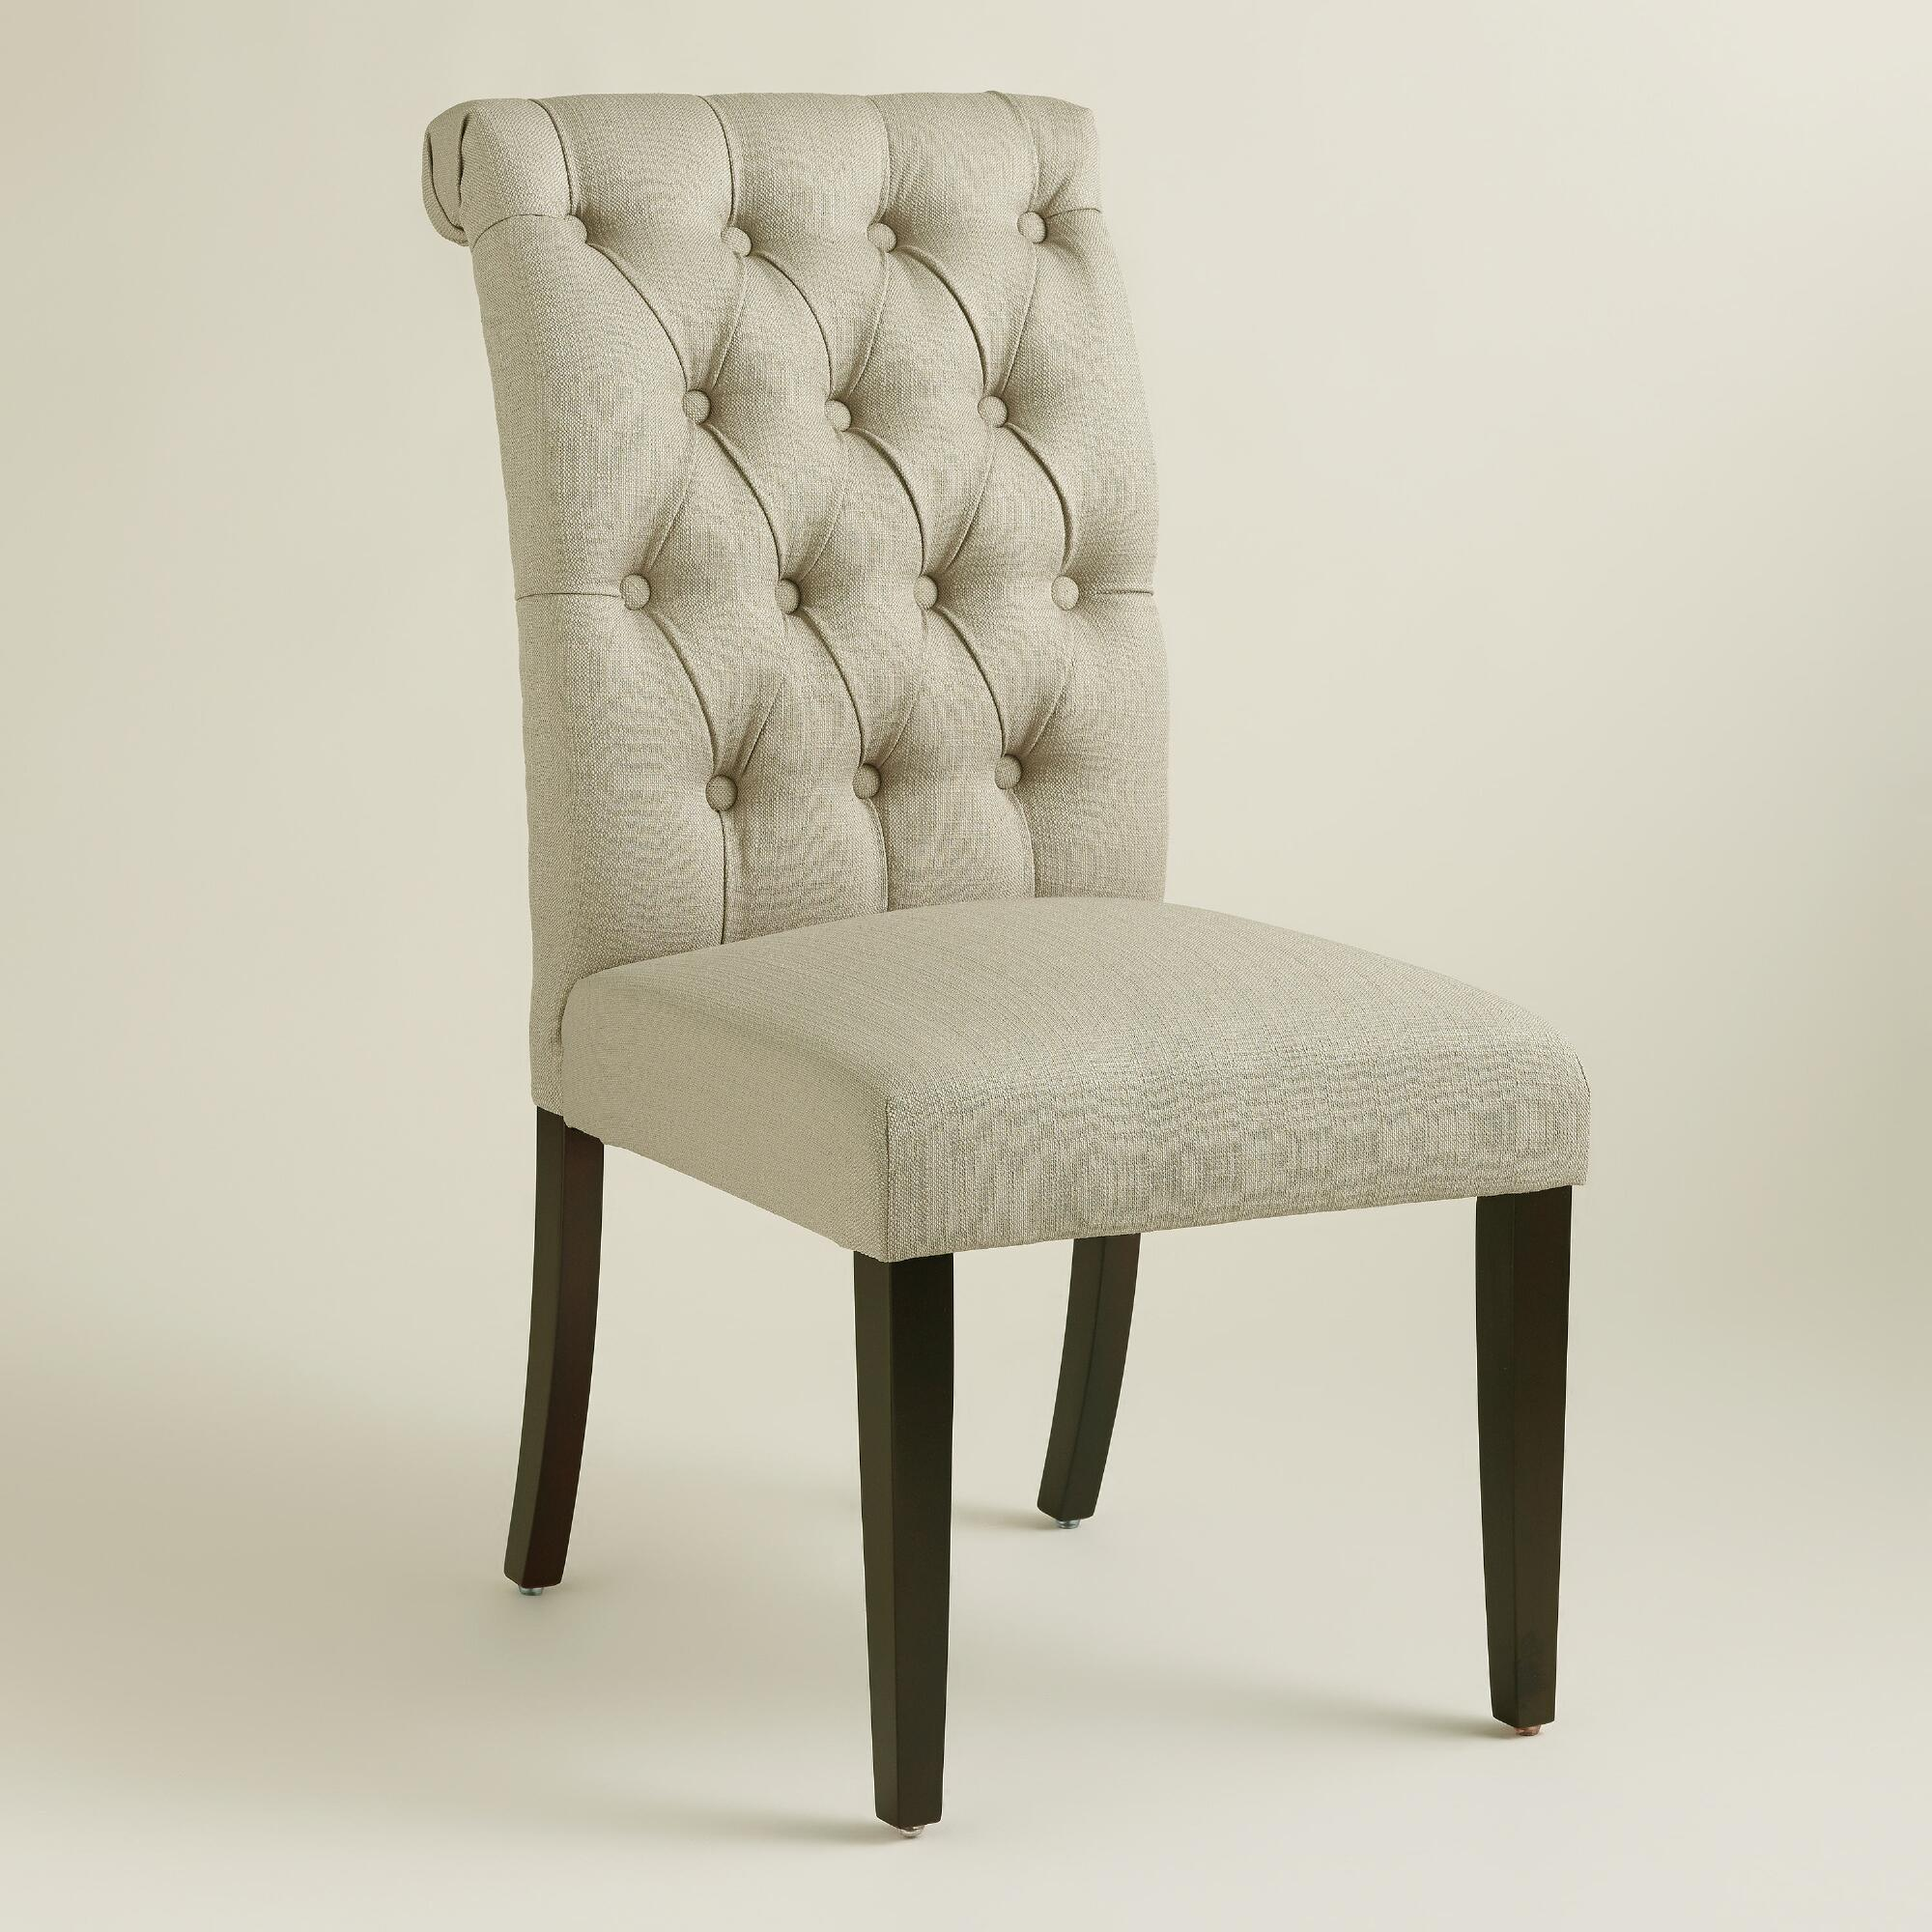 Breathtaking Upholstered Dining Chairs For Room With